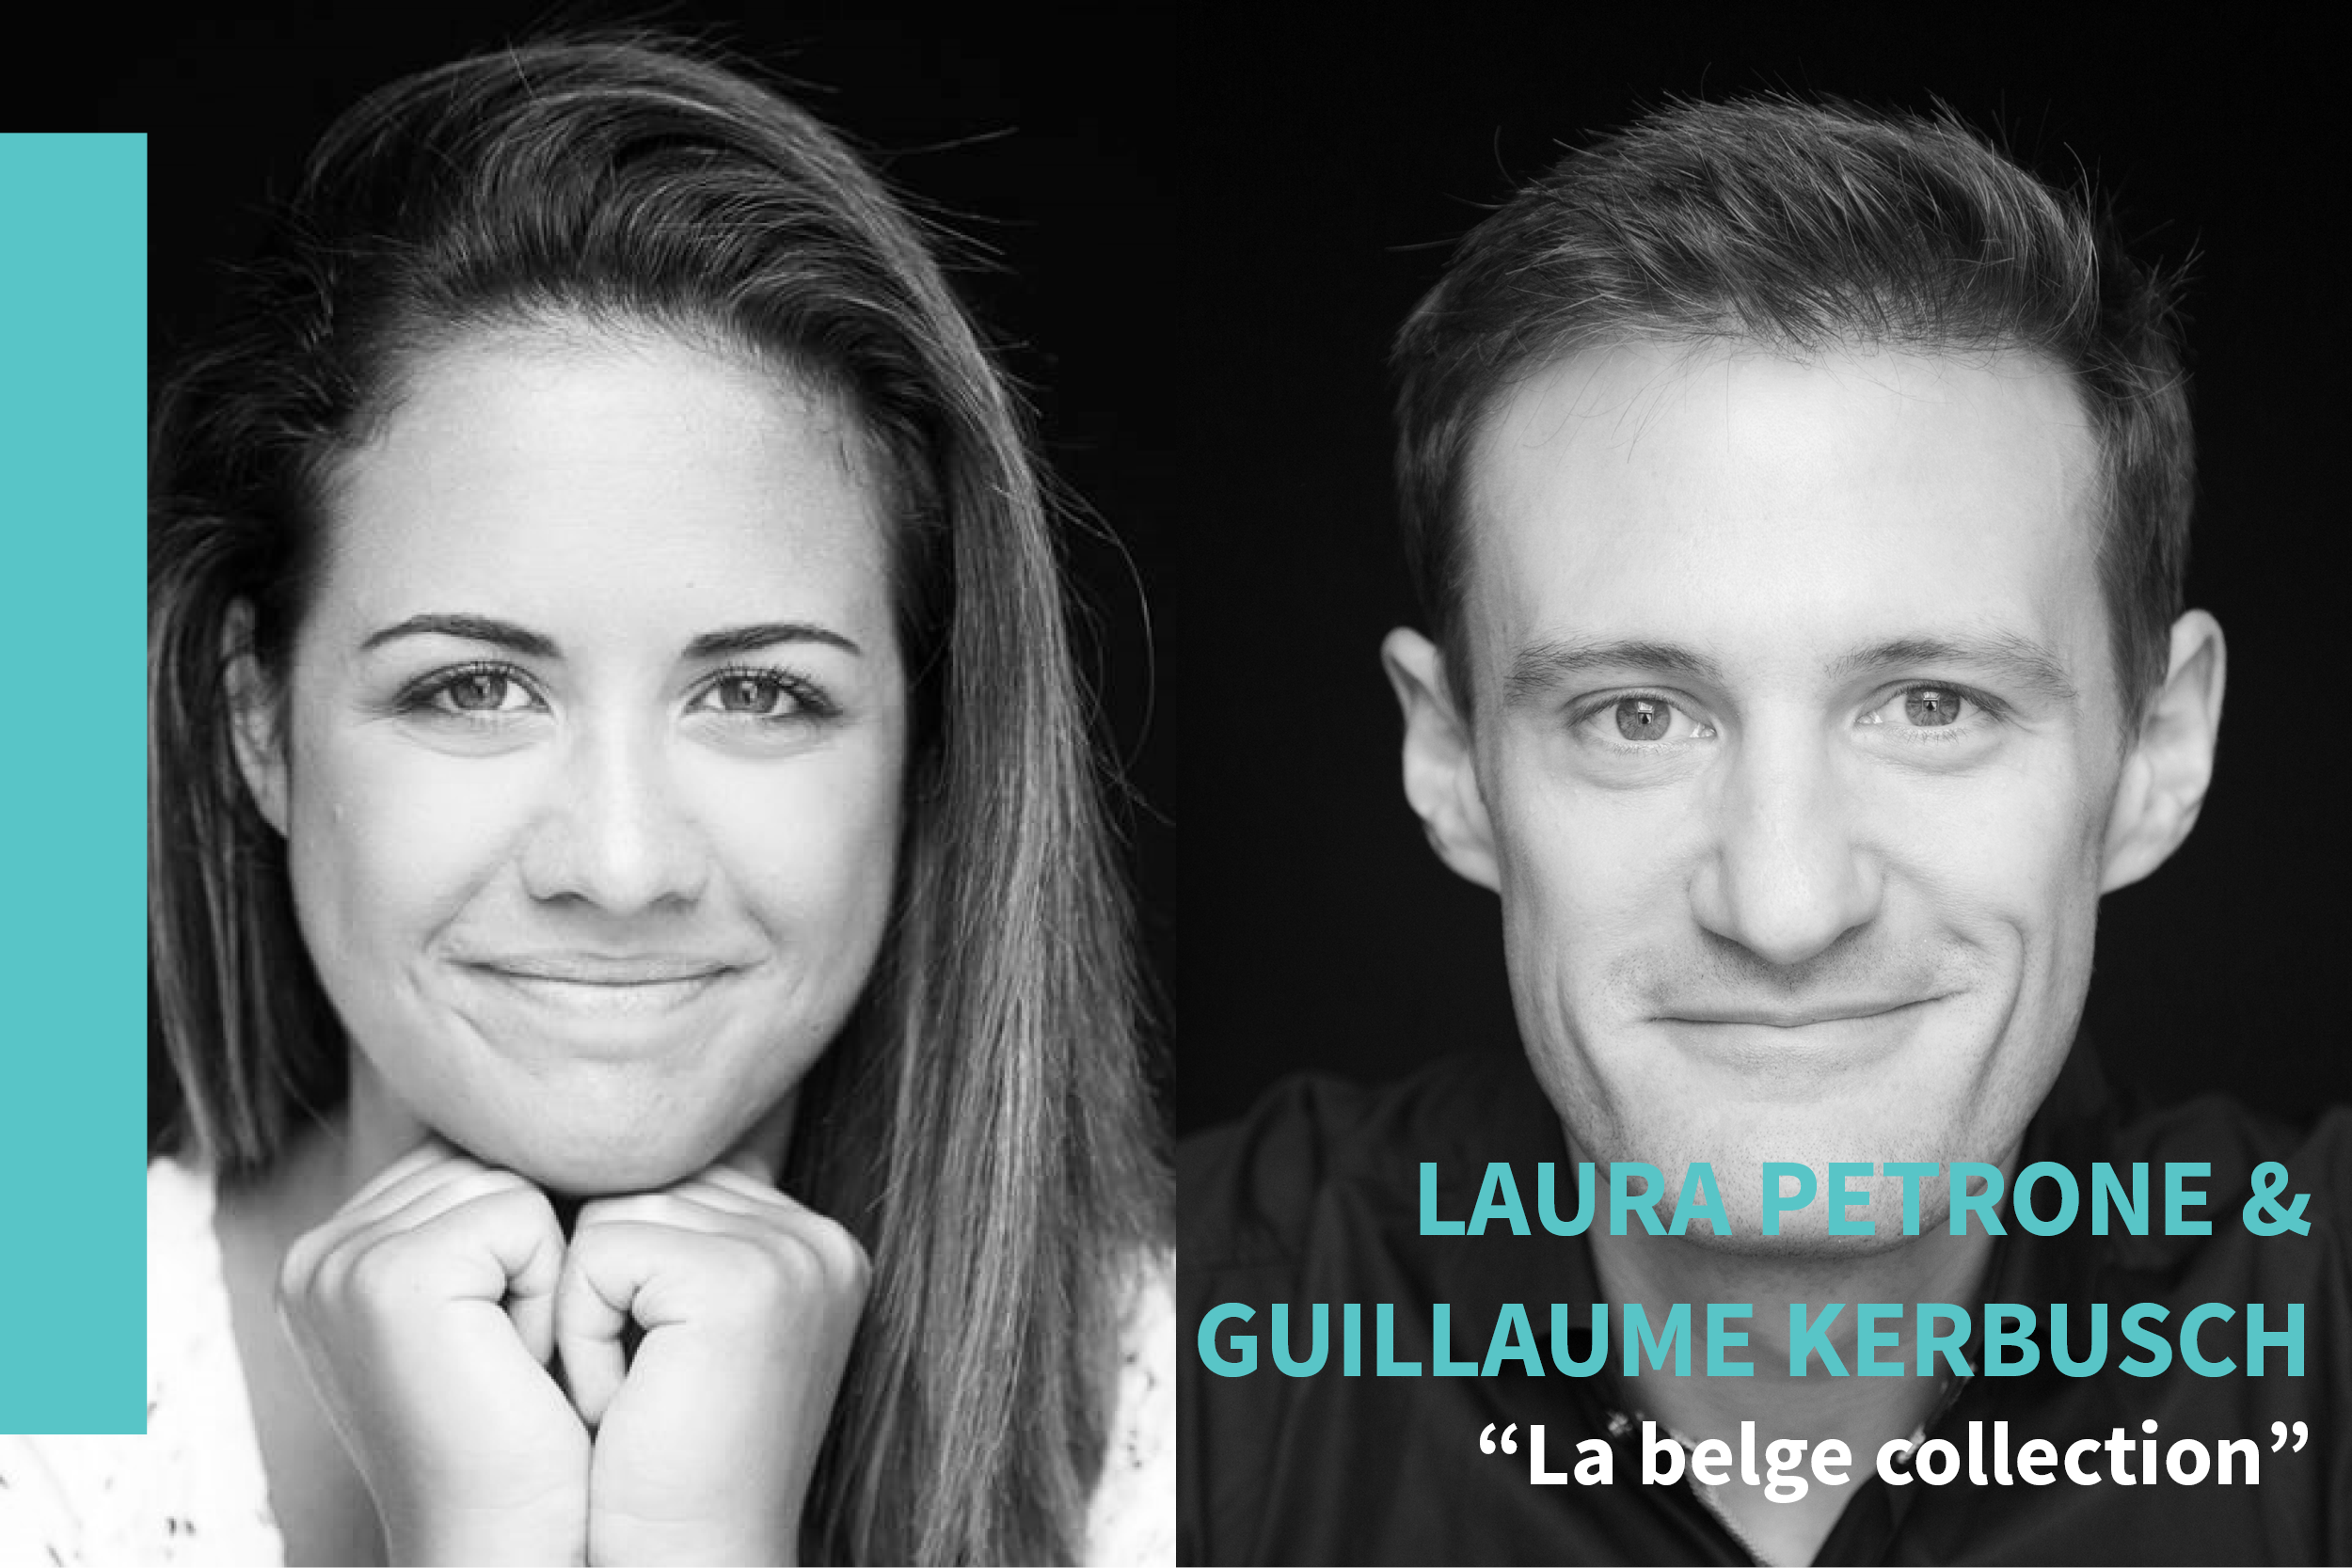 """La belge collection"", by Laura Petrone & Guillaume Kerbusch"